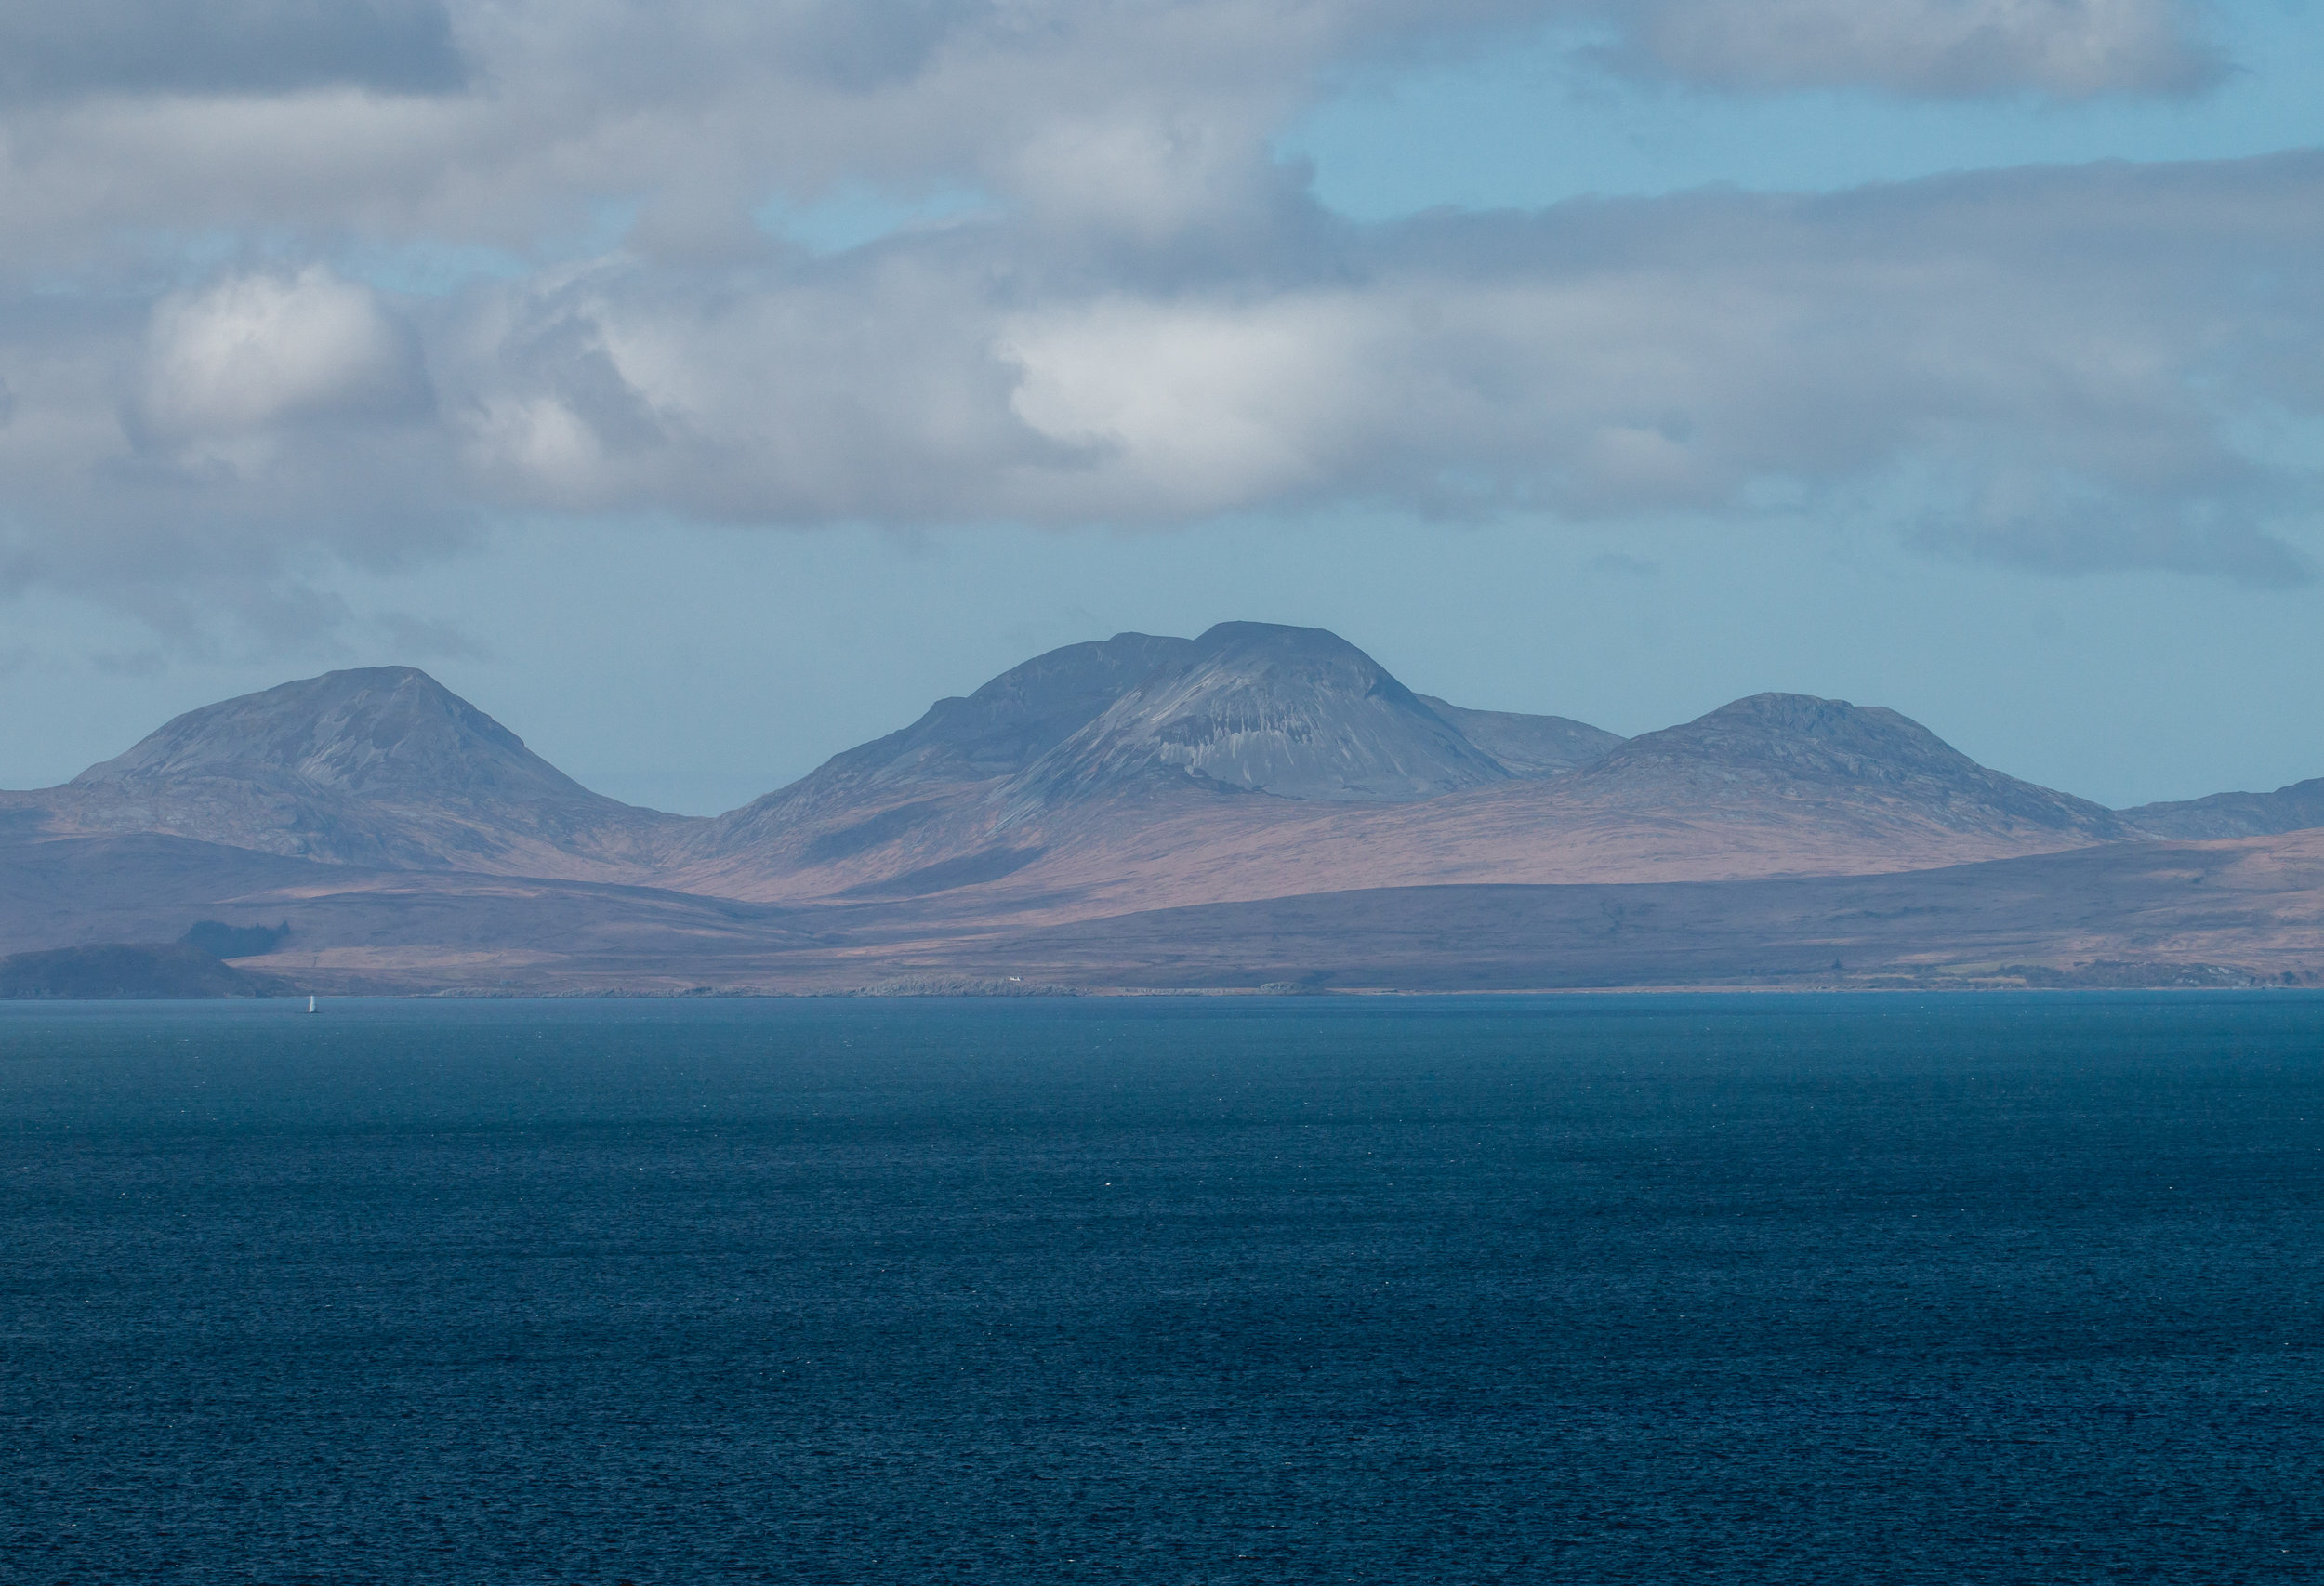 The Paps of Jura.